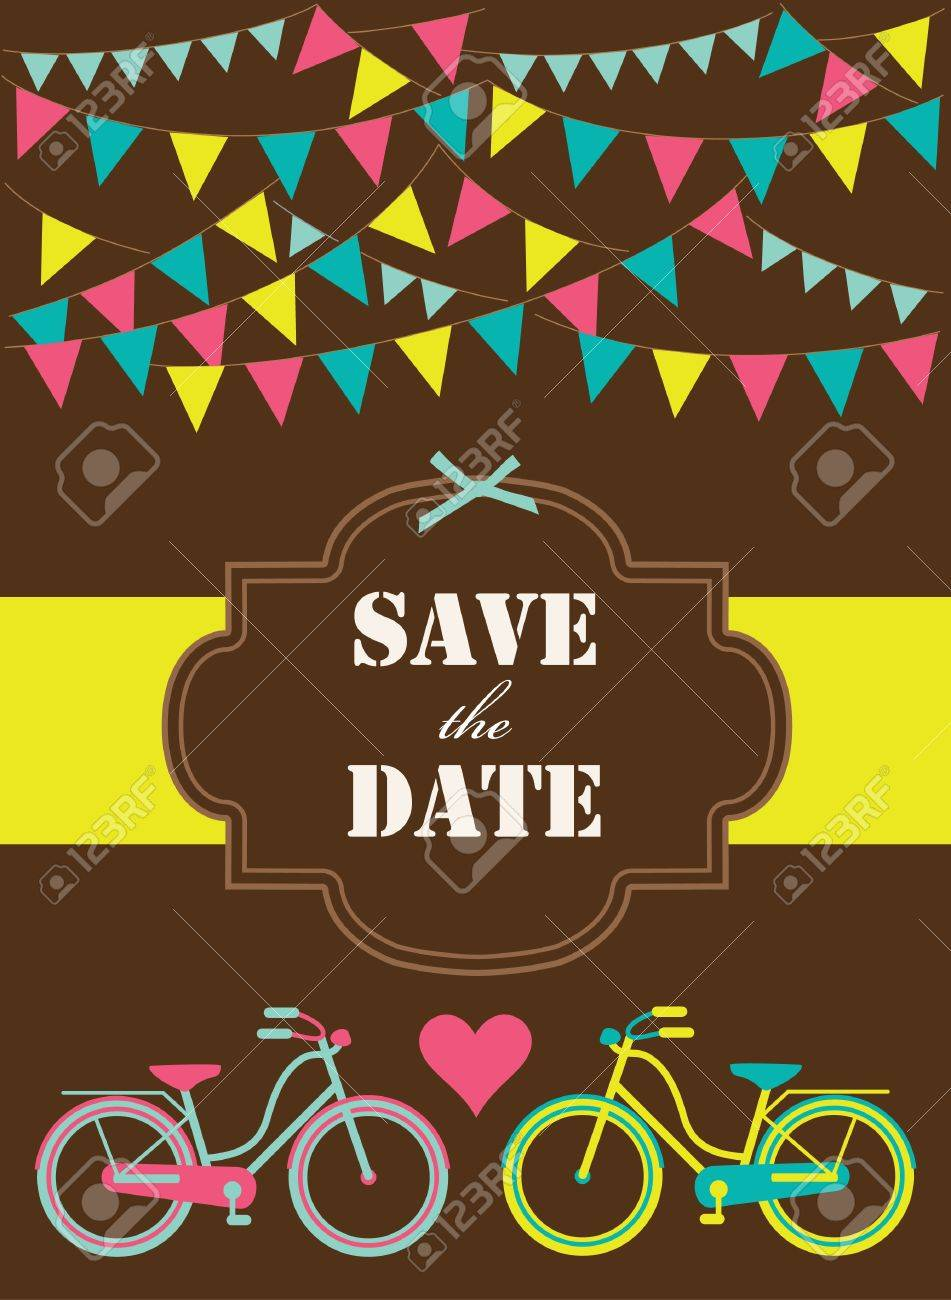 save the date card  vector illustration Stock Vector - 22718270